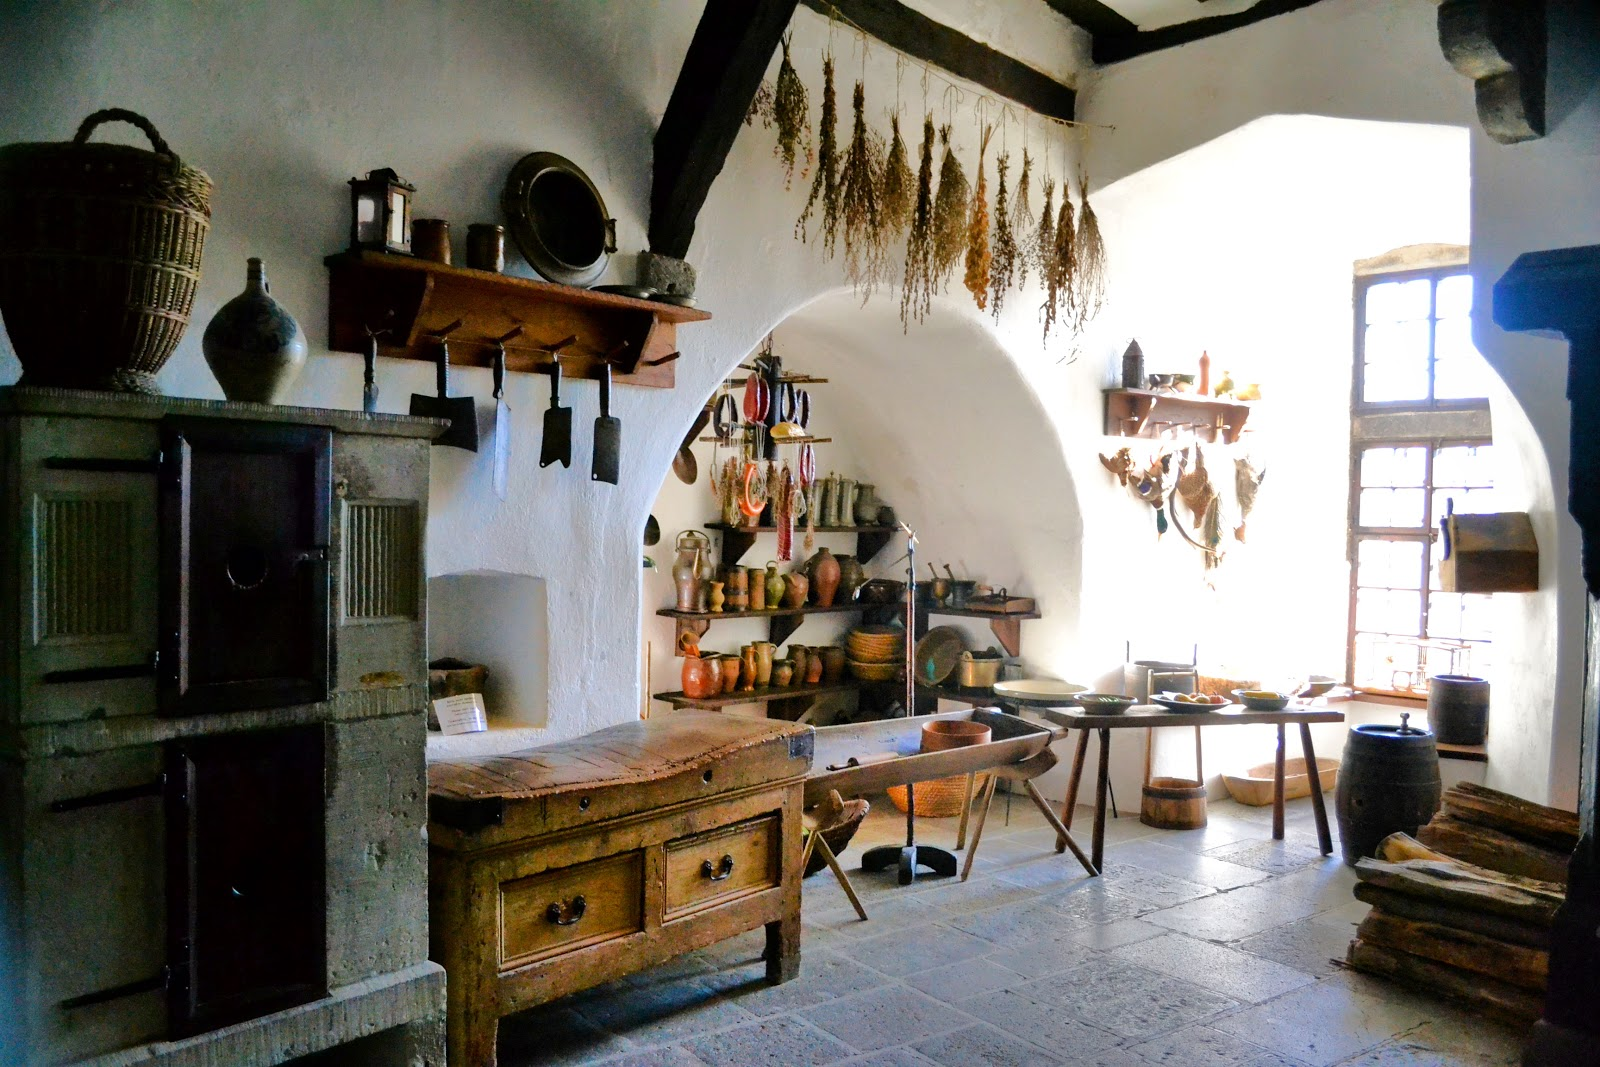 Marksburg Castle kitchen dates back to 1435 and today, can be reserved for medieval meals and festivities.